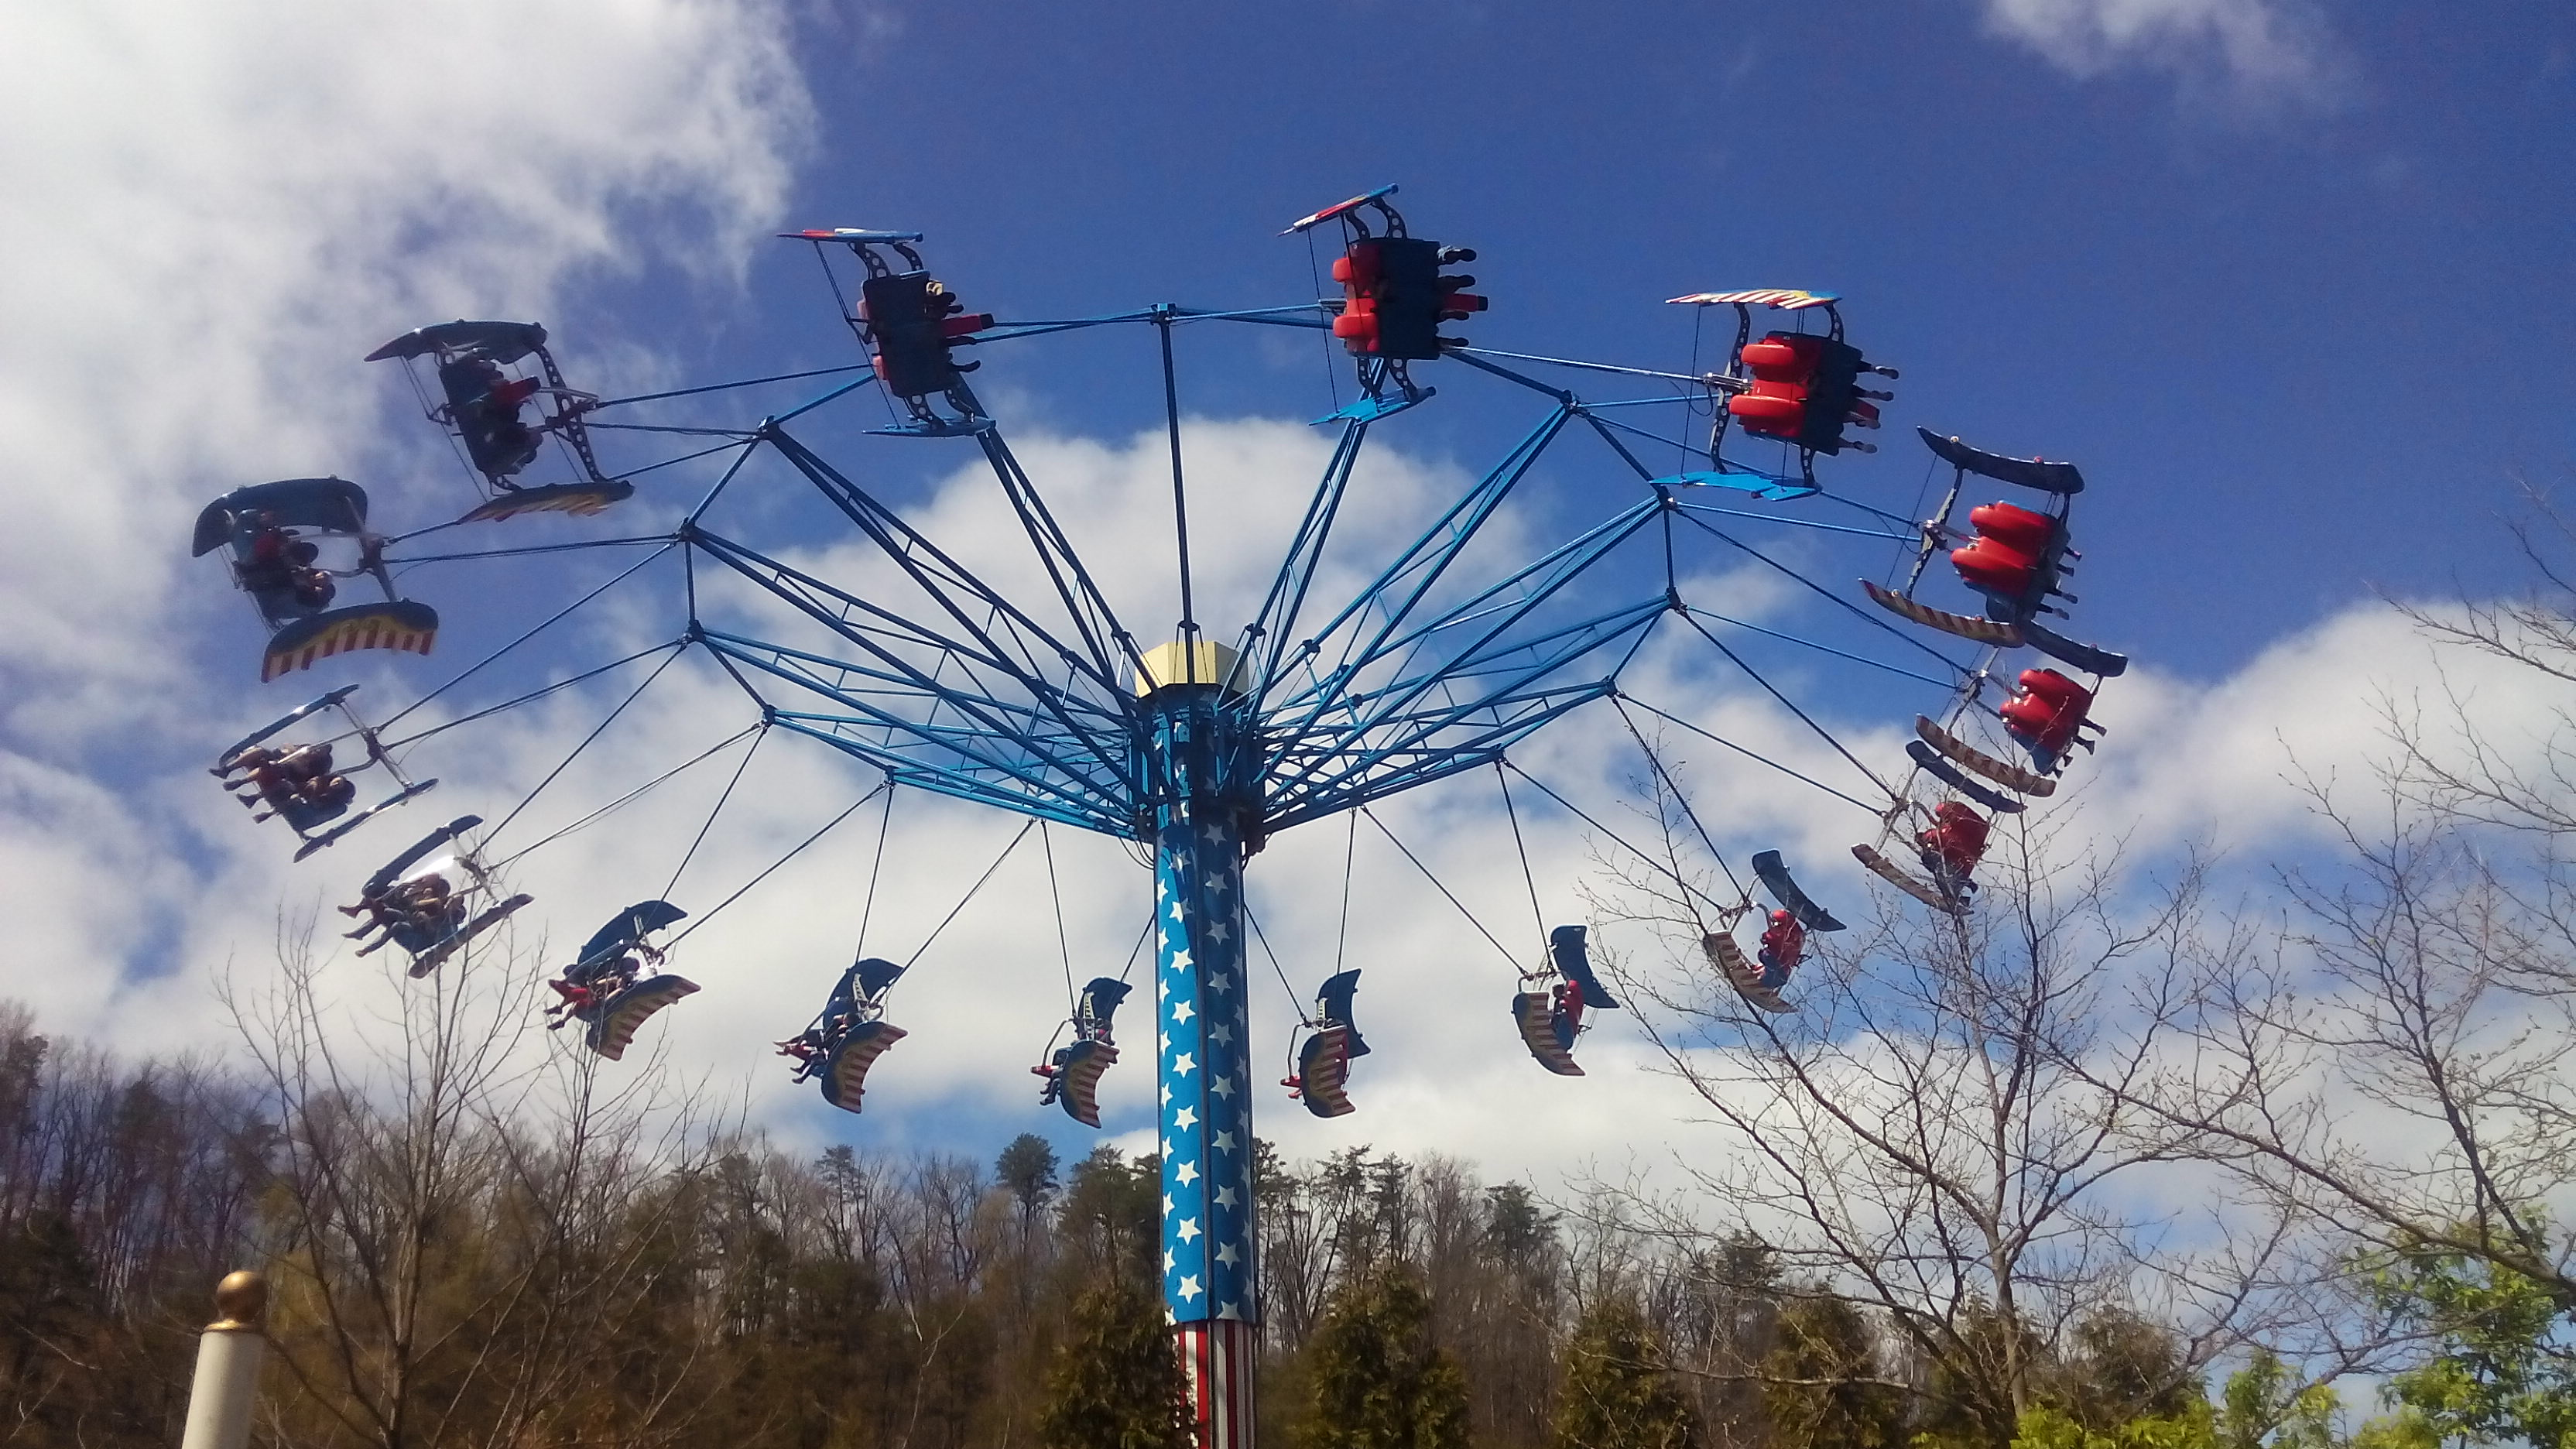 gatlinburg special events, pigeon forge special events, Spring Events in the Smoky Mountains, Springfest 2019 Smoky Mountains, Springfest Gatlinburg, Springfest Pigeon Forge